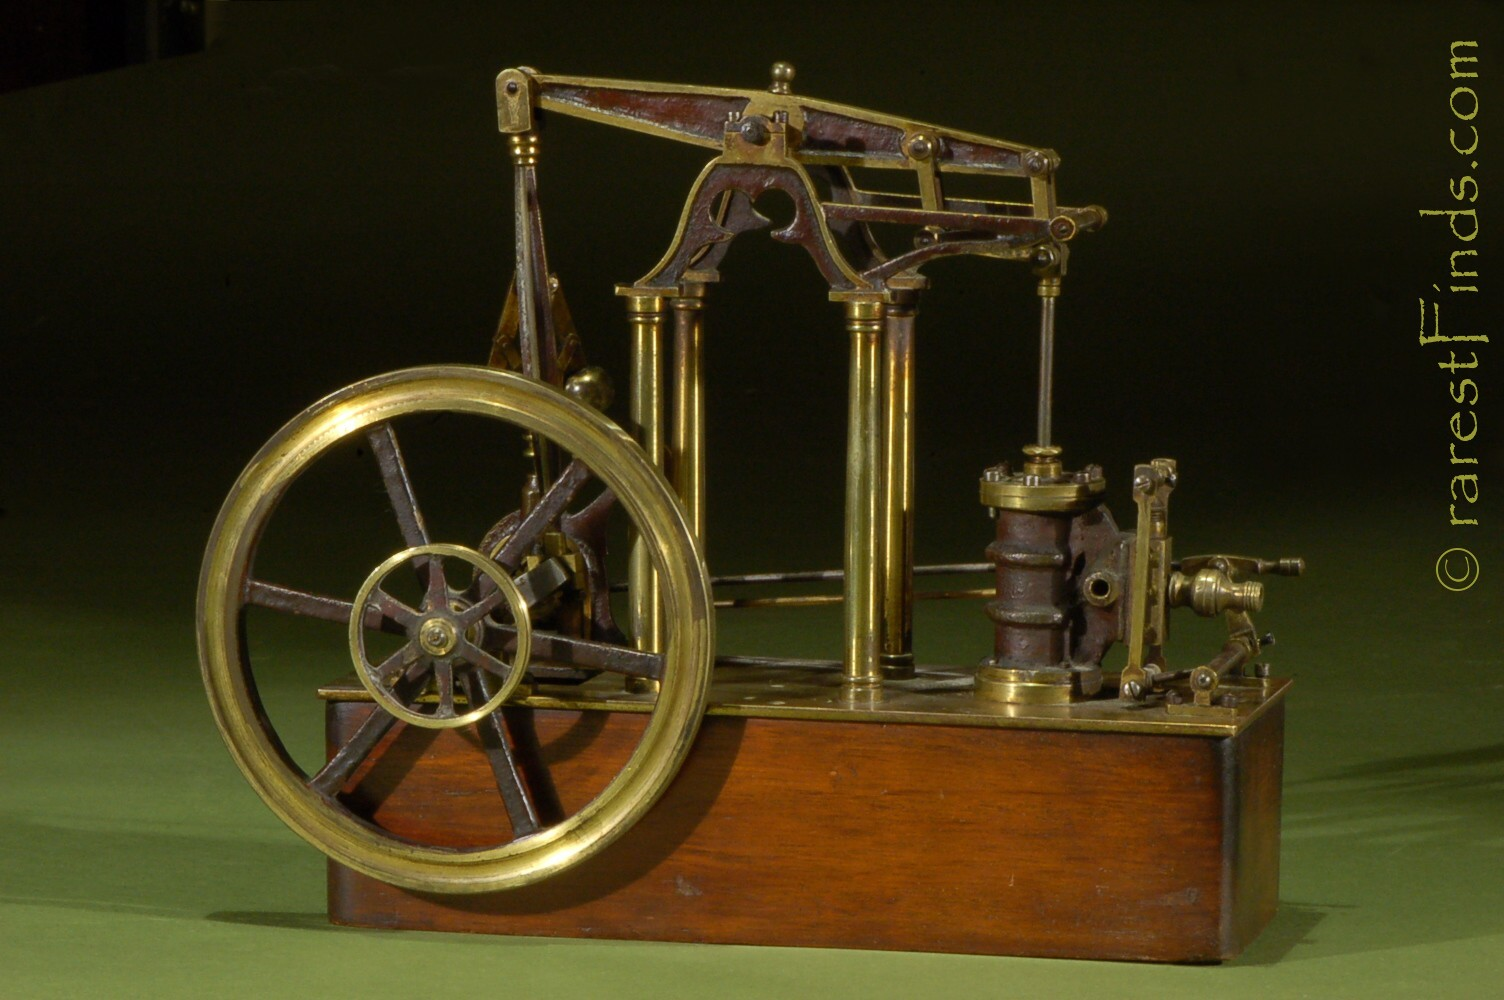 James_Watt_ca_1820_steam-engine_featuring_four_columns_rotative_vertical_beam_design_centrifugal_governor_low_pressure_single_double_acting_cylinder_Watt's_Parallel_Motion